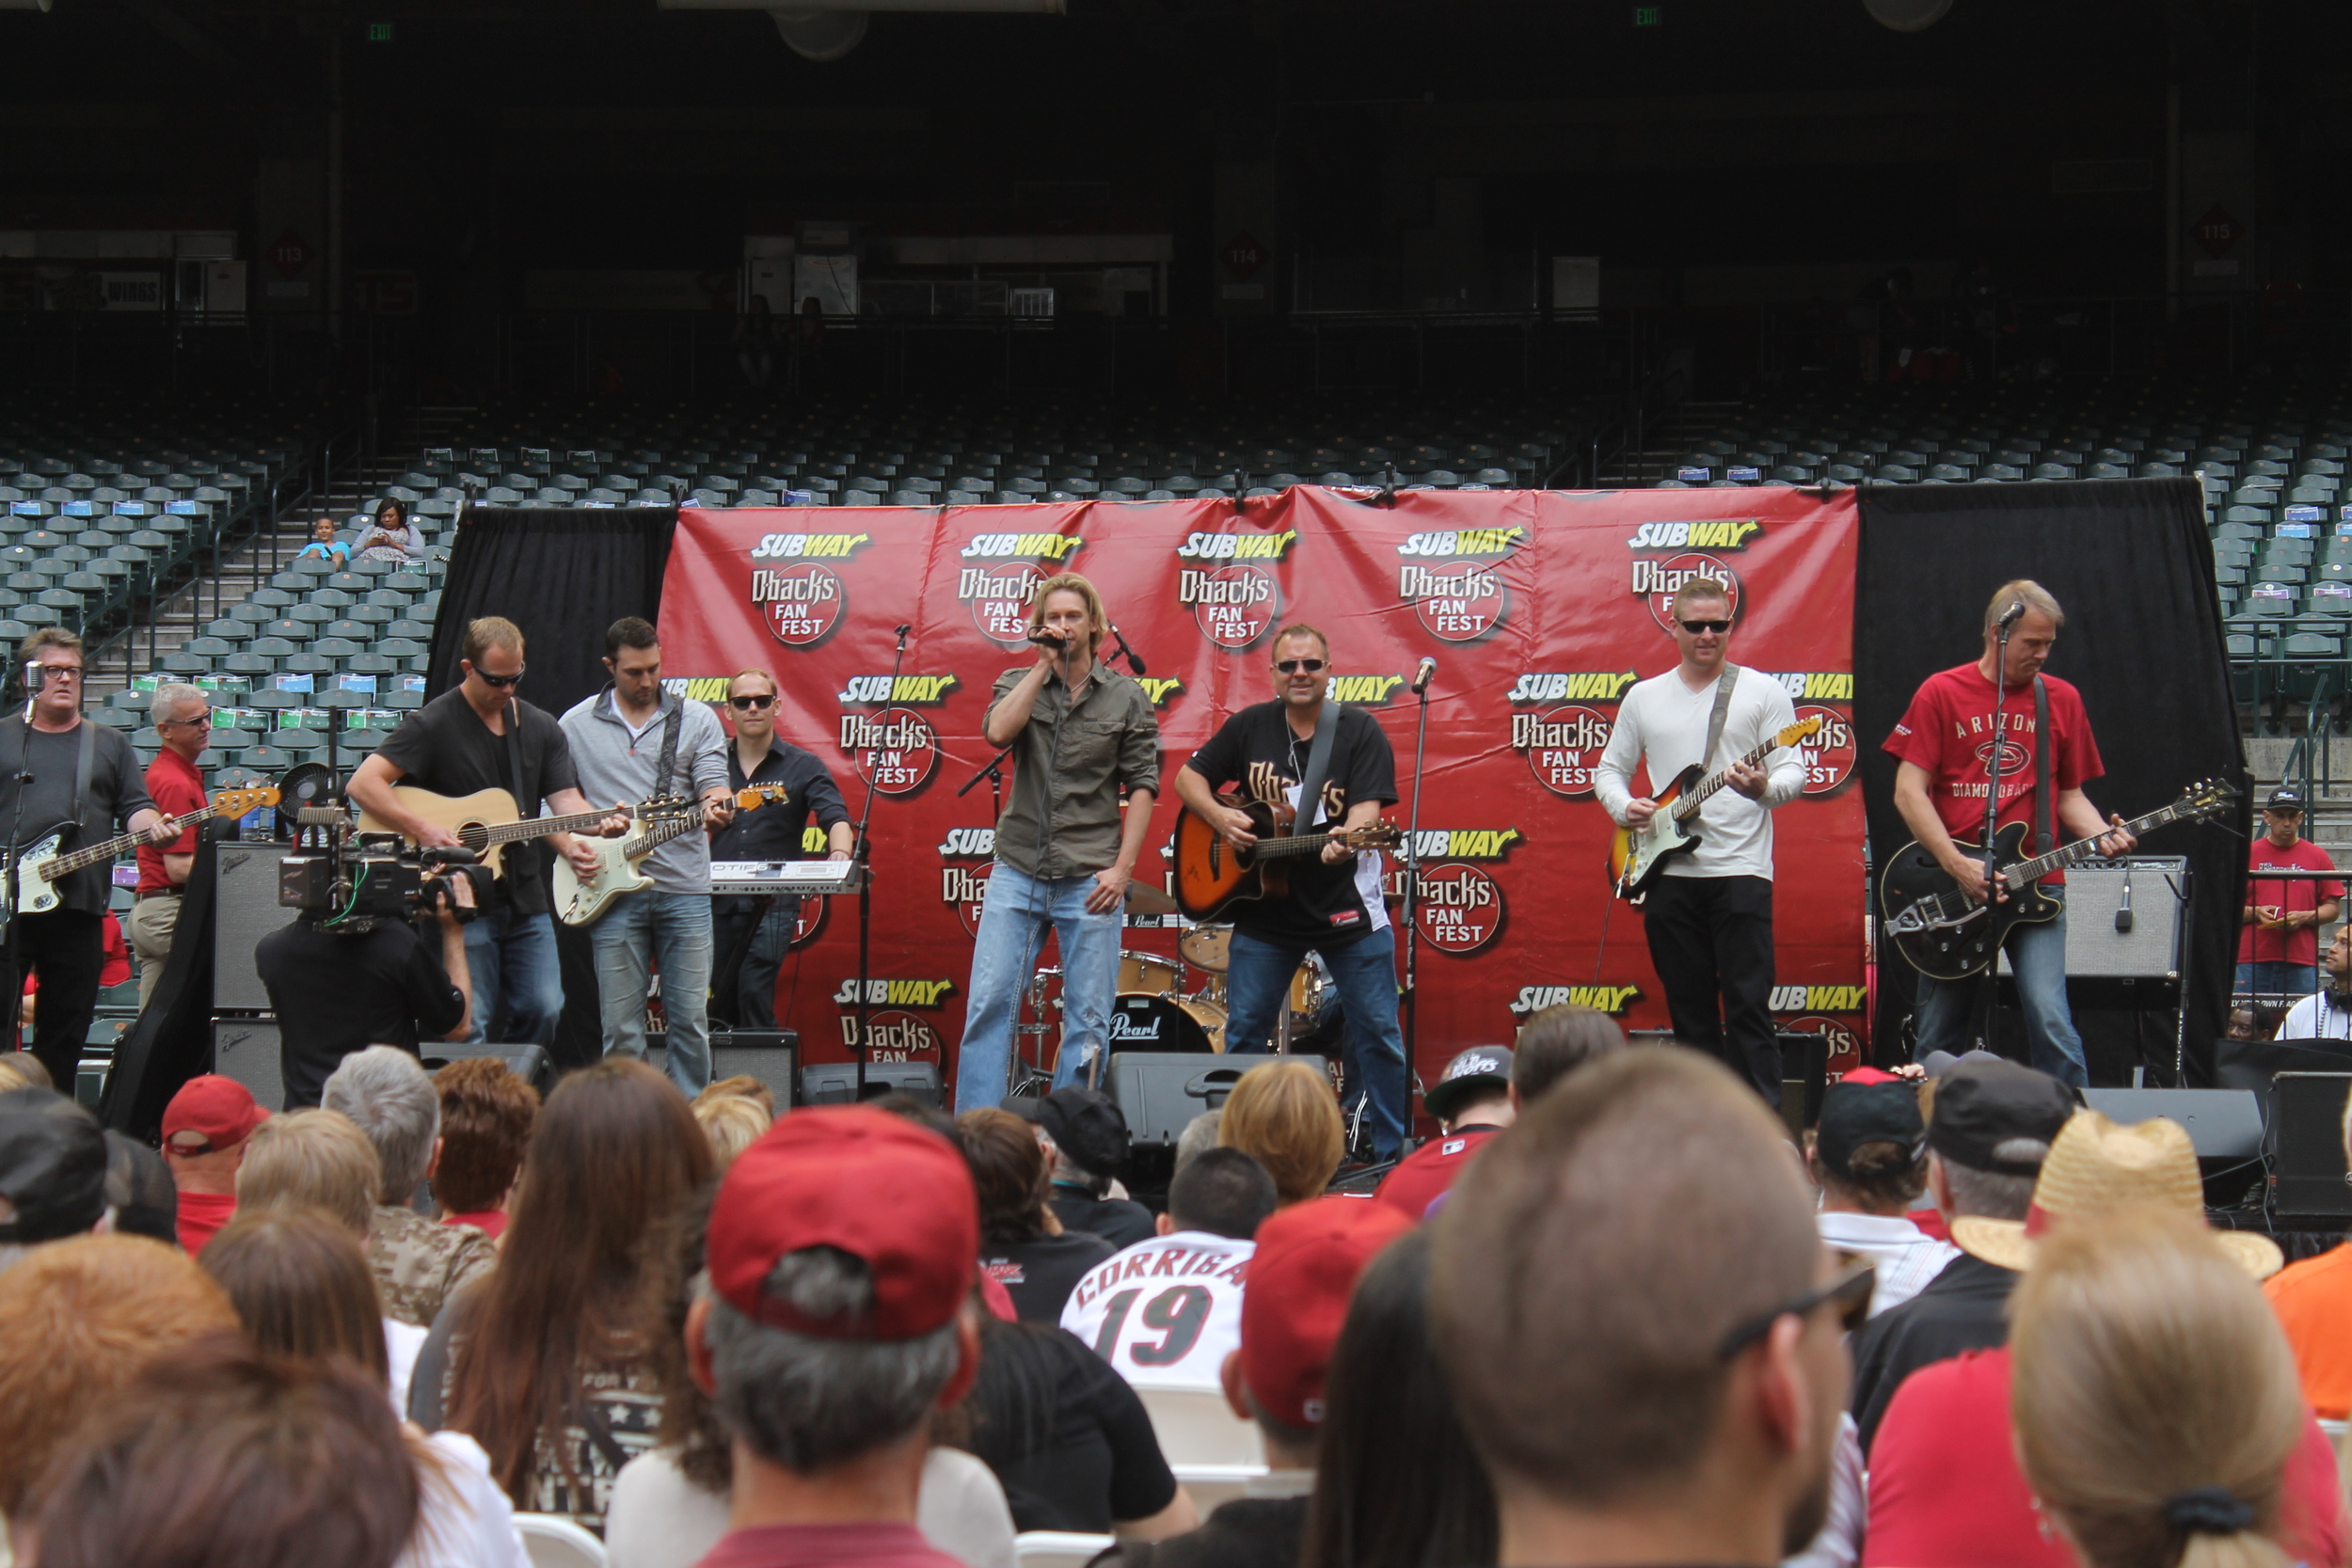 The DBacks band